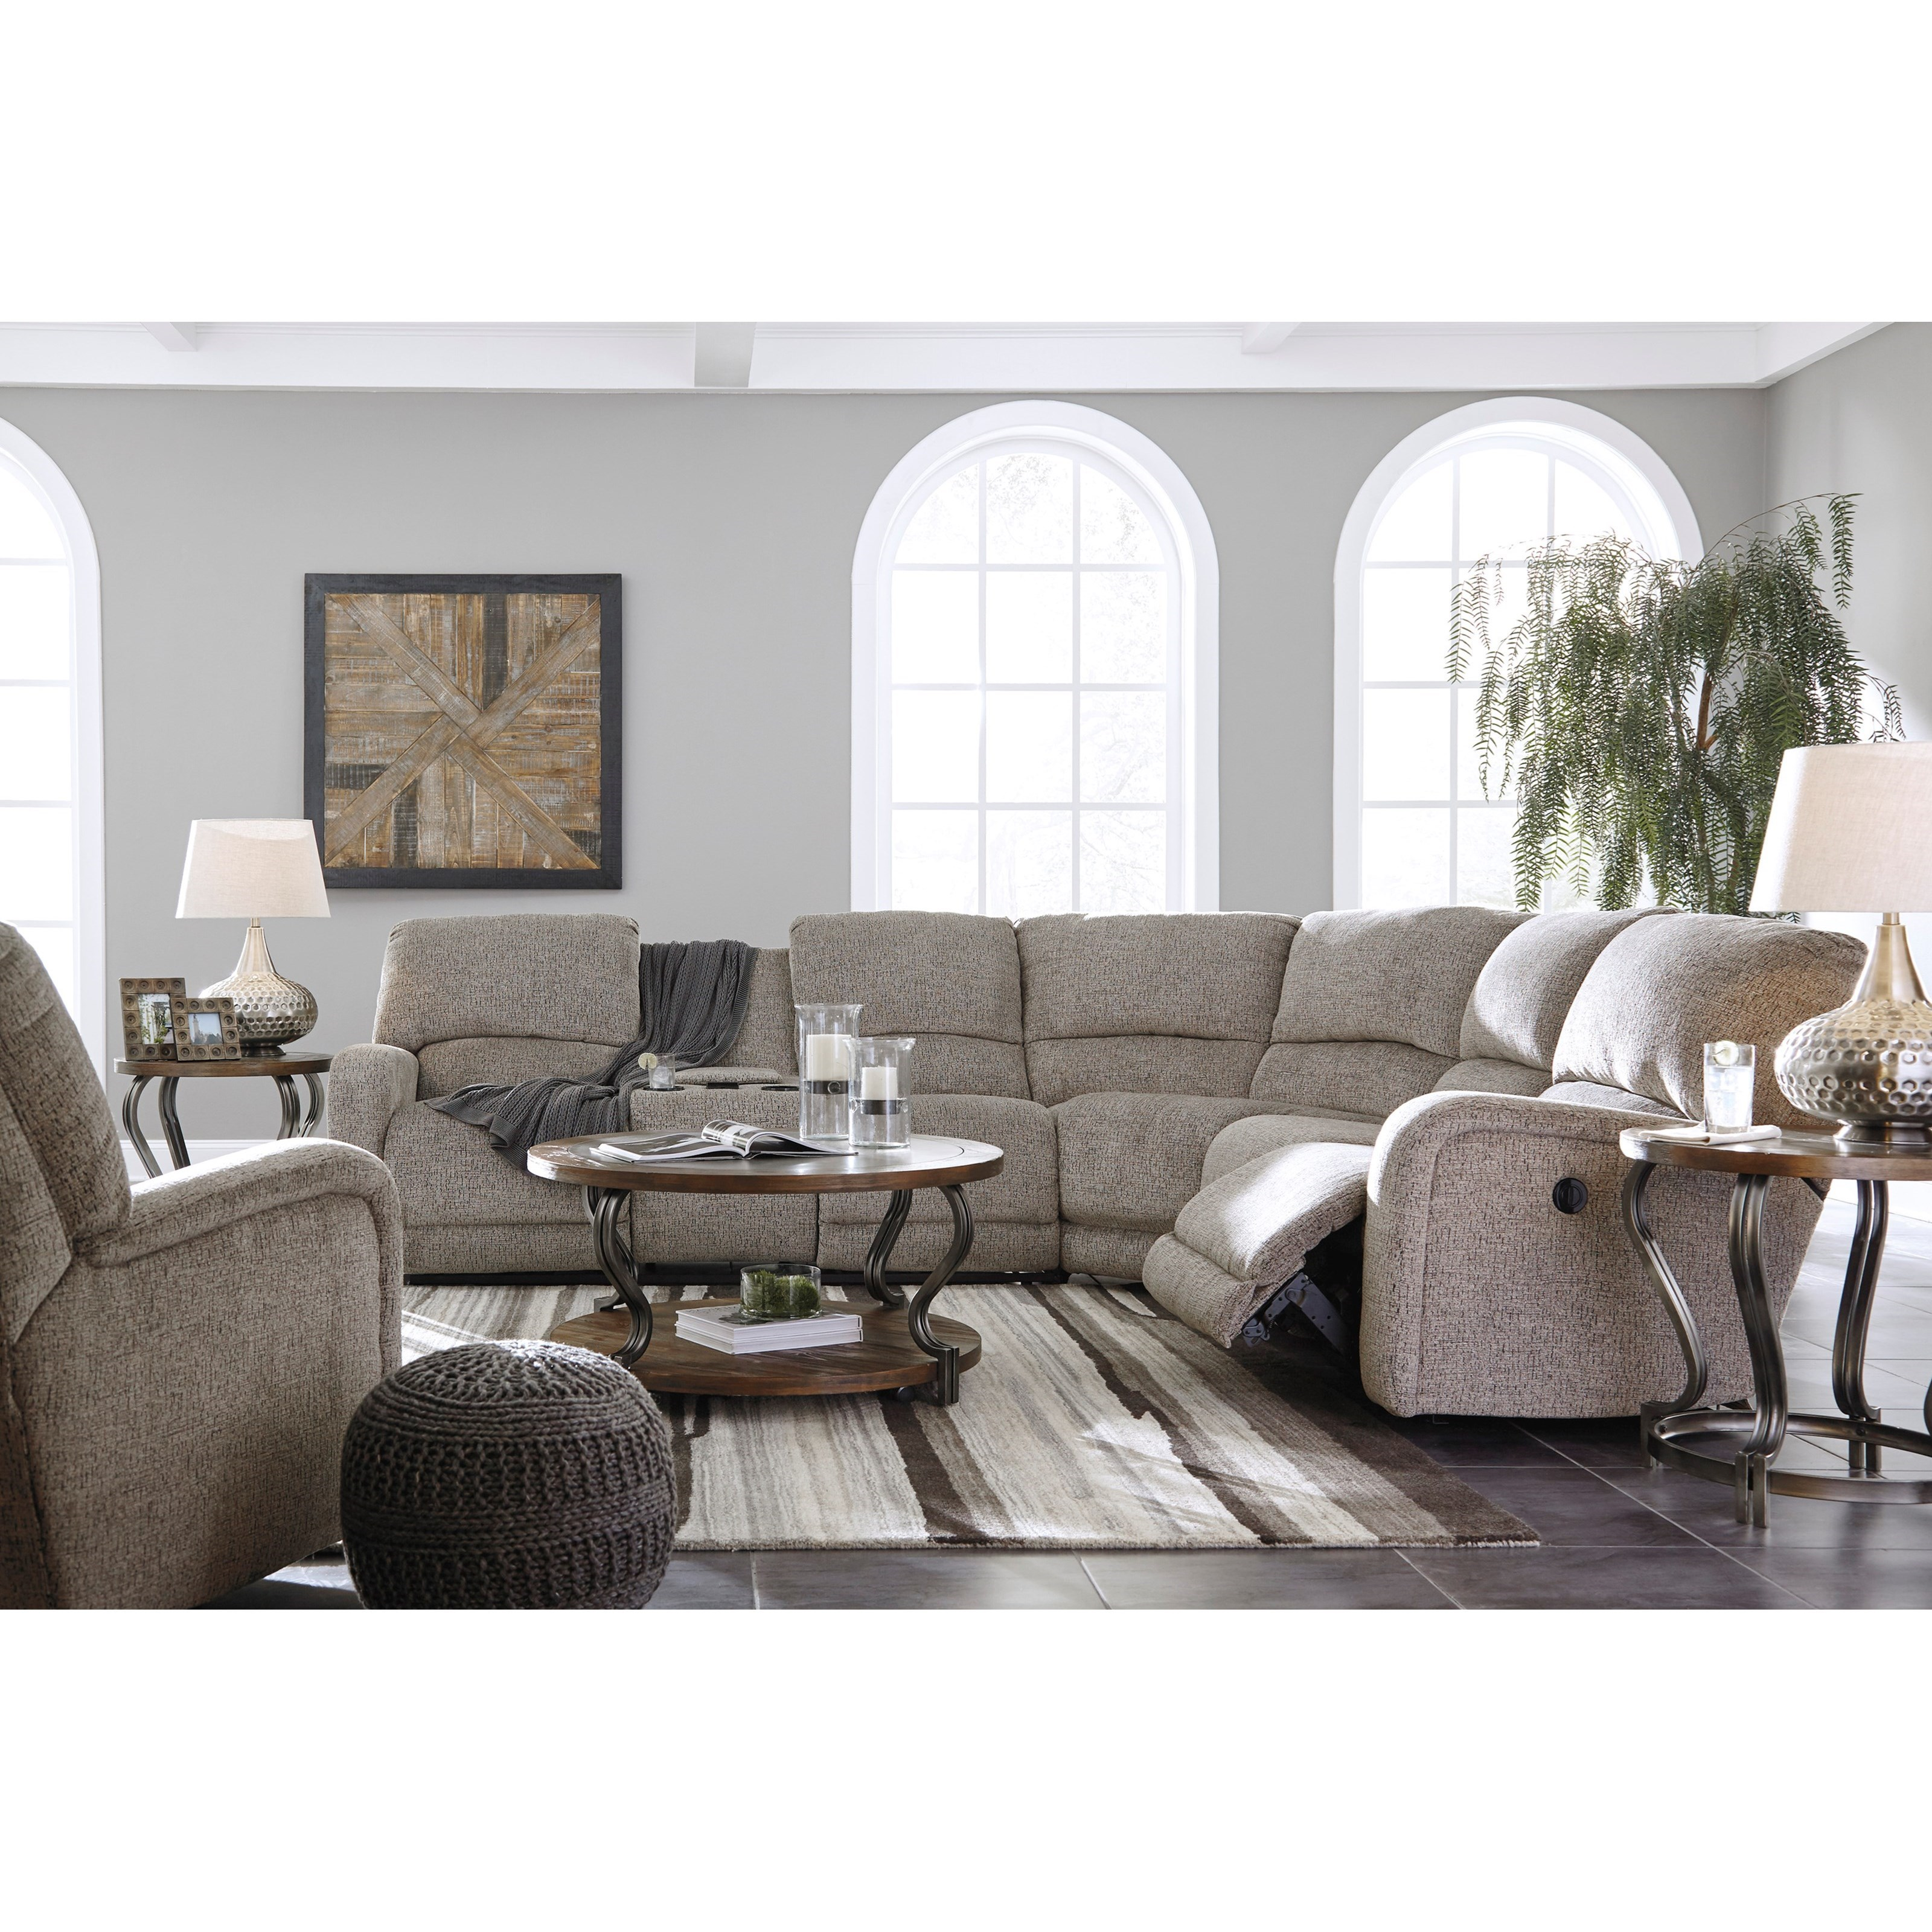 Signature design by ashley pittsfield reclining living for Living room furniture groups